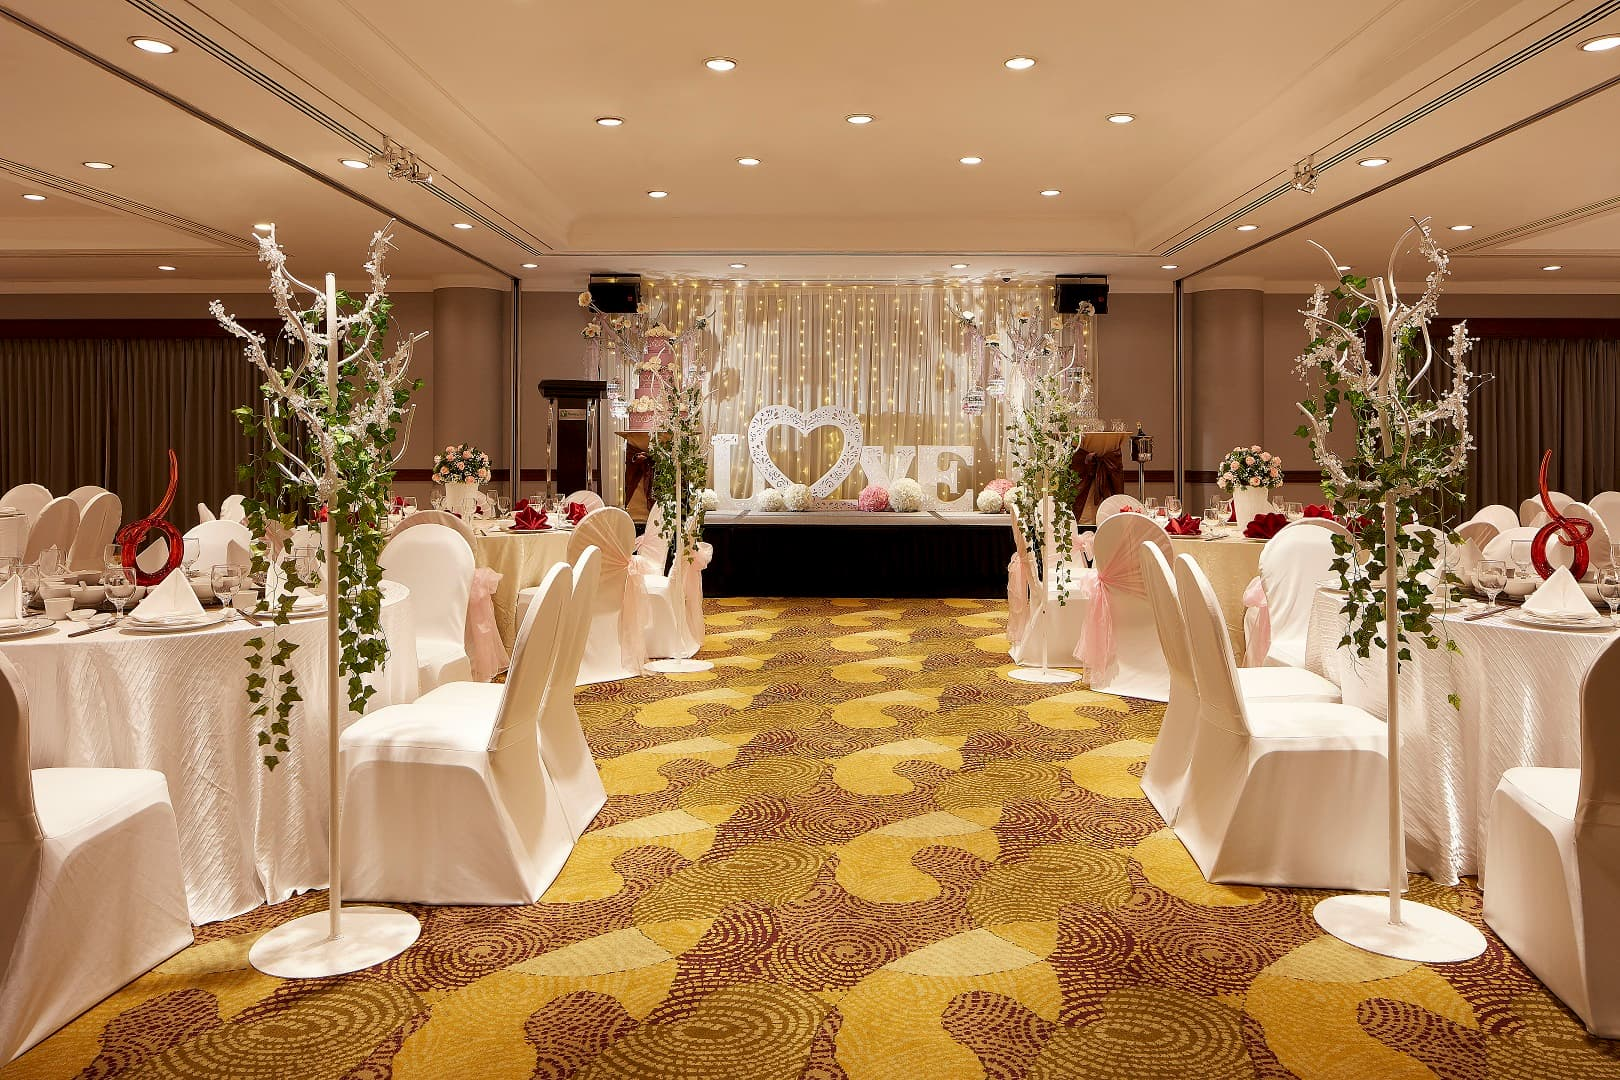 Holiday Inn Singapore Atrium Is A Proud Recipient Of The Her World Brides Venue Awards 2018 Awarded For Best Wedding Dinner Menu 4 Star And